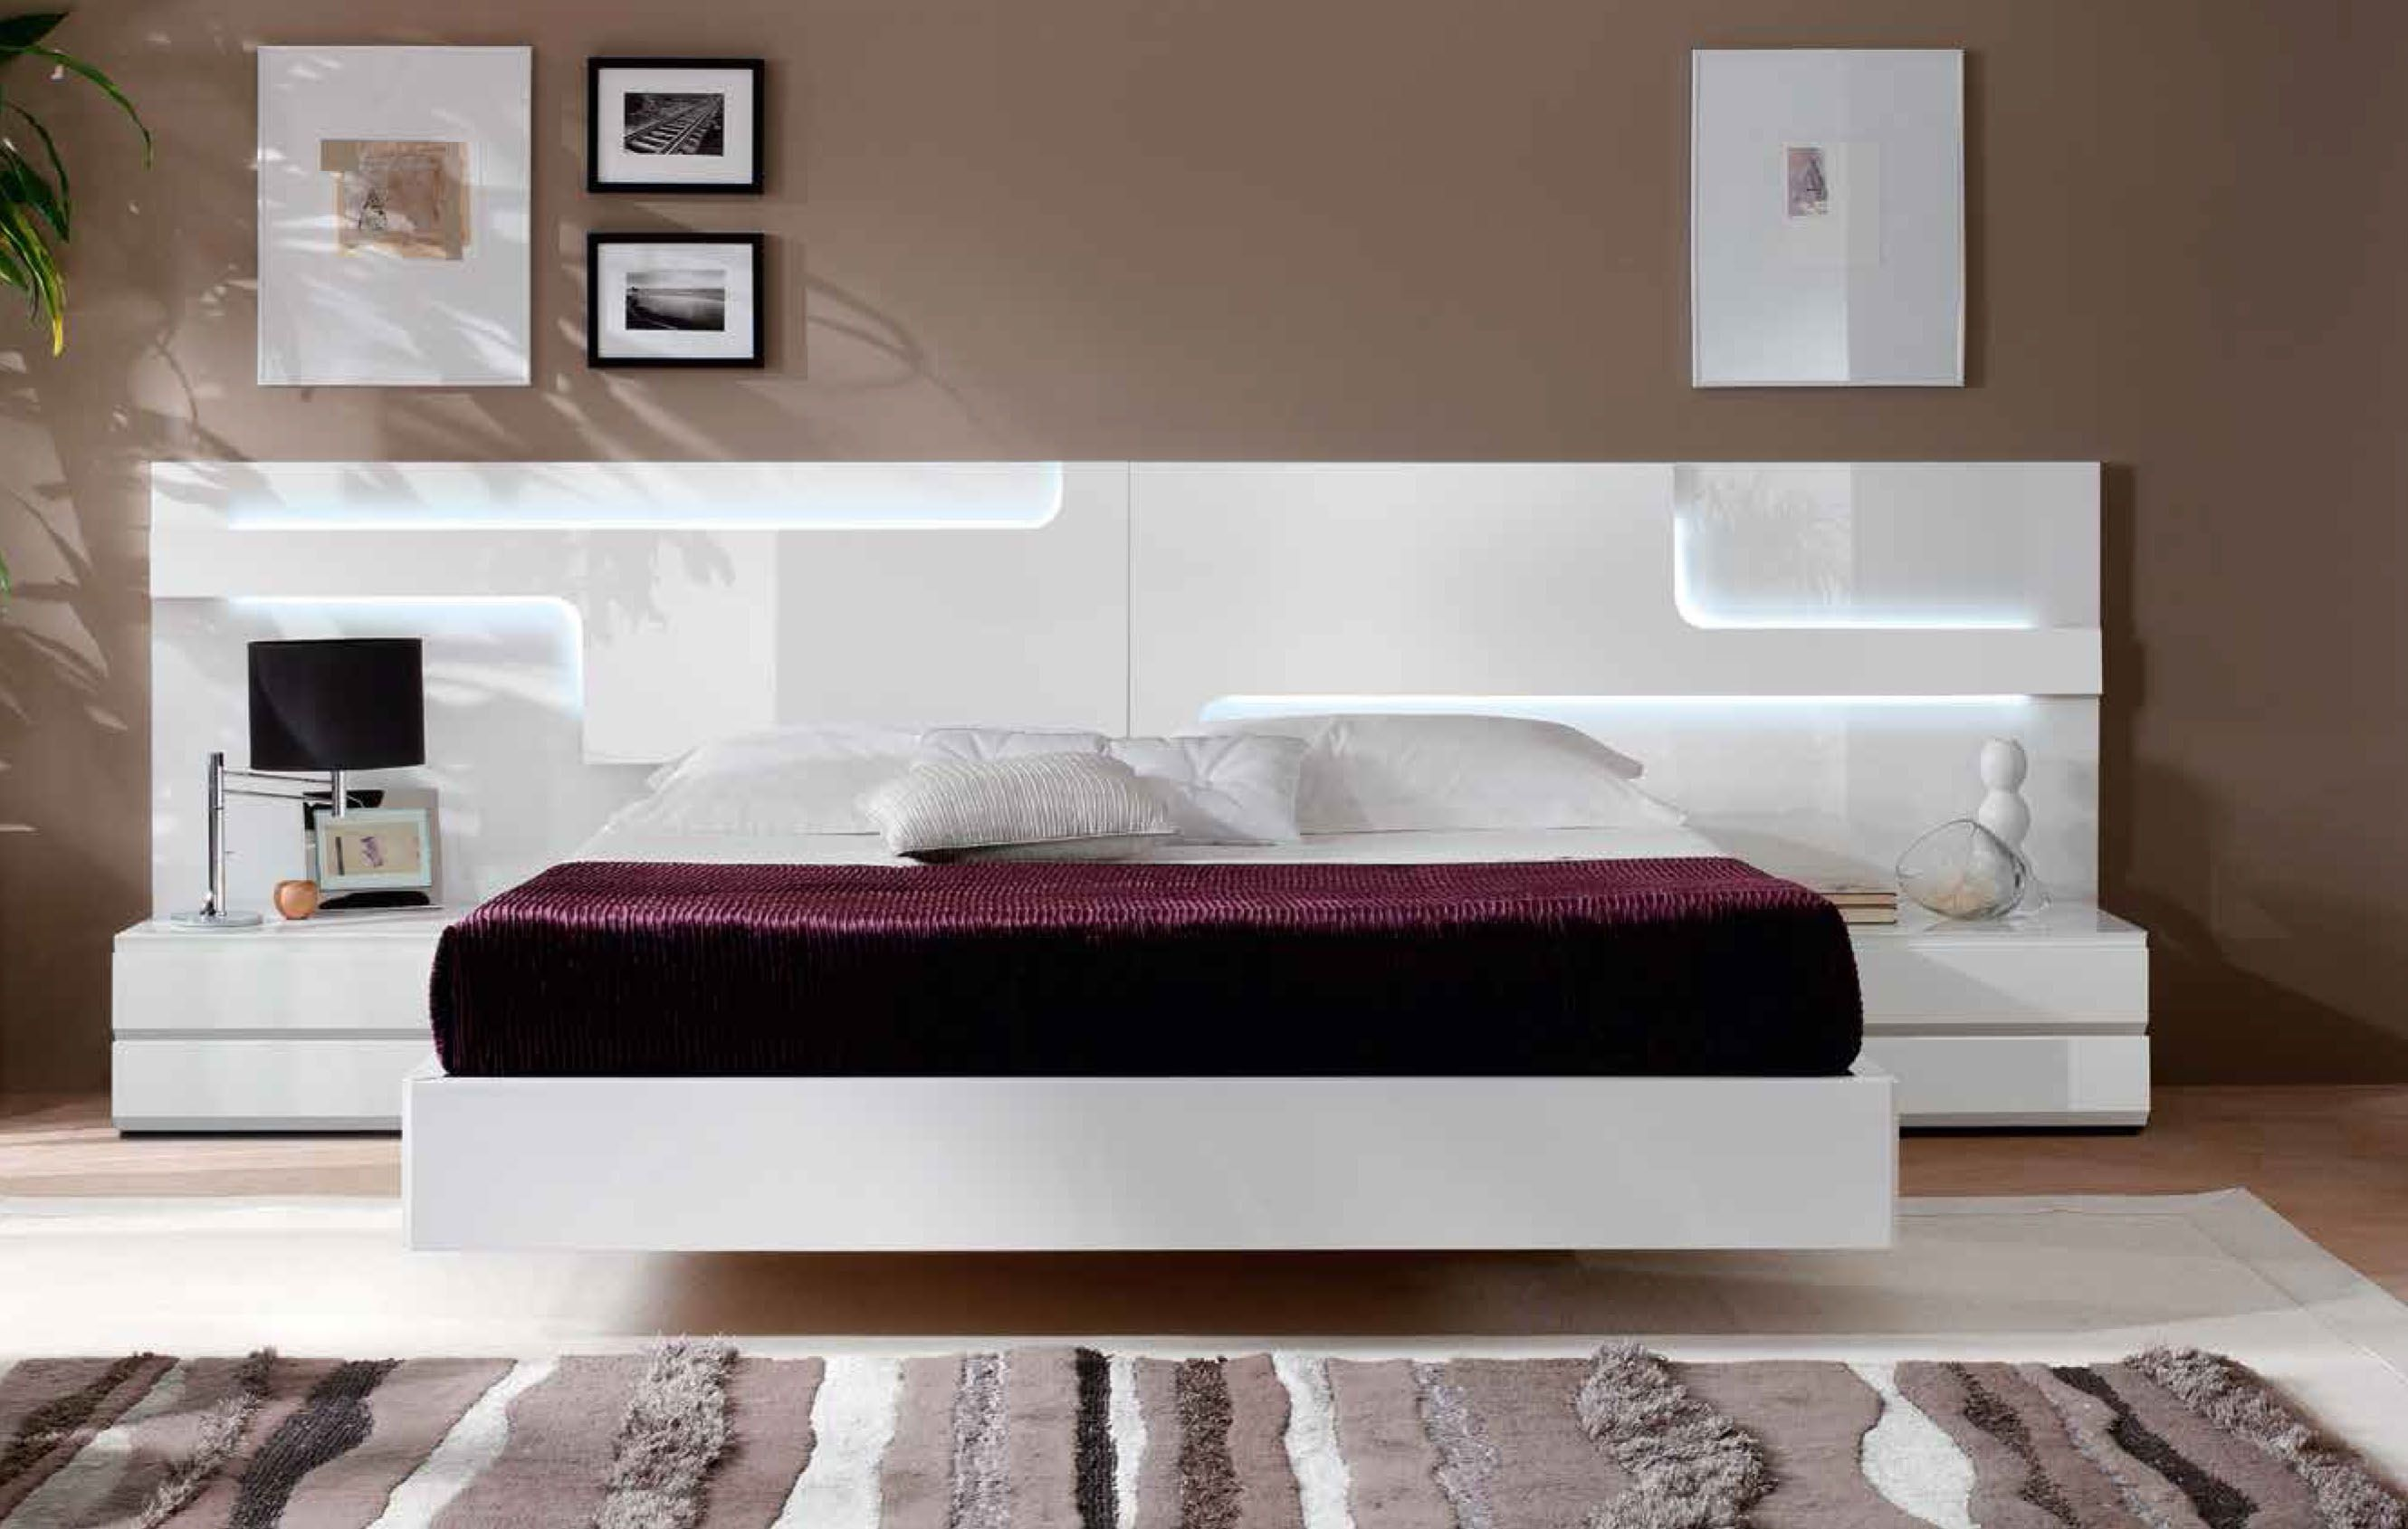 Contemporary Bedroom Furniture And Bedroom Design With 9 Design Contemporary Bedroom Furniture Home And Furniture 2017 Interior